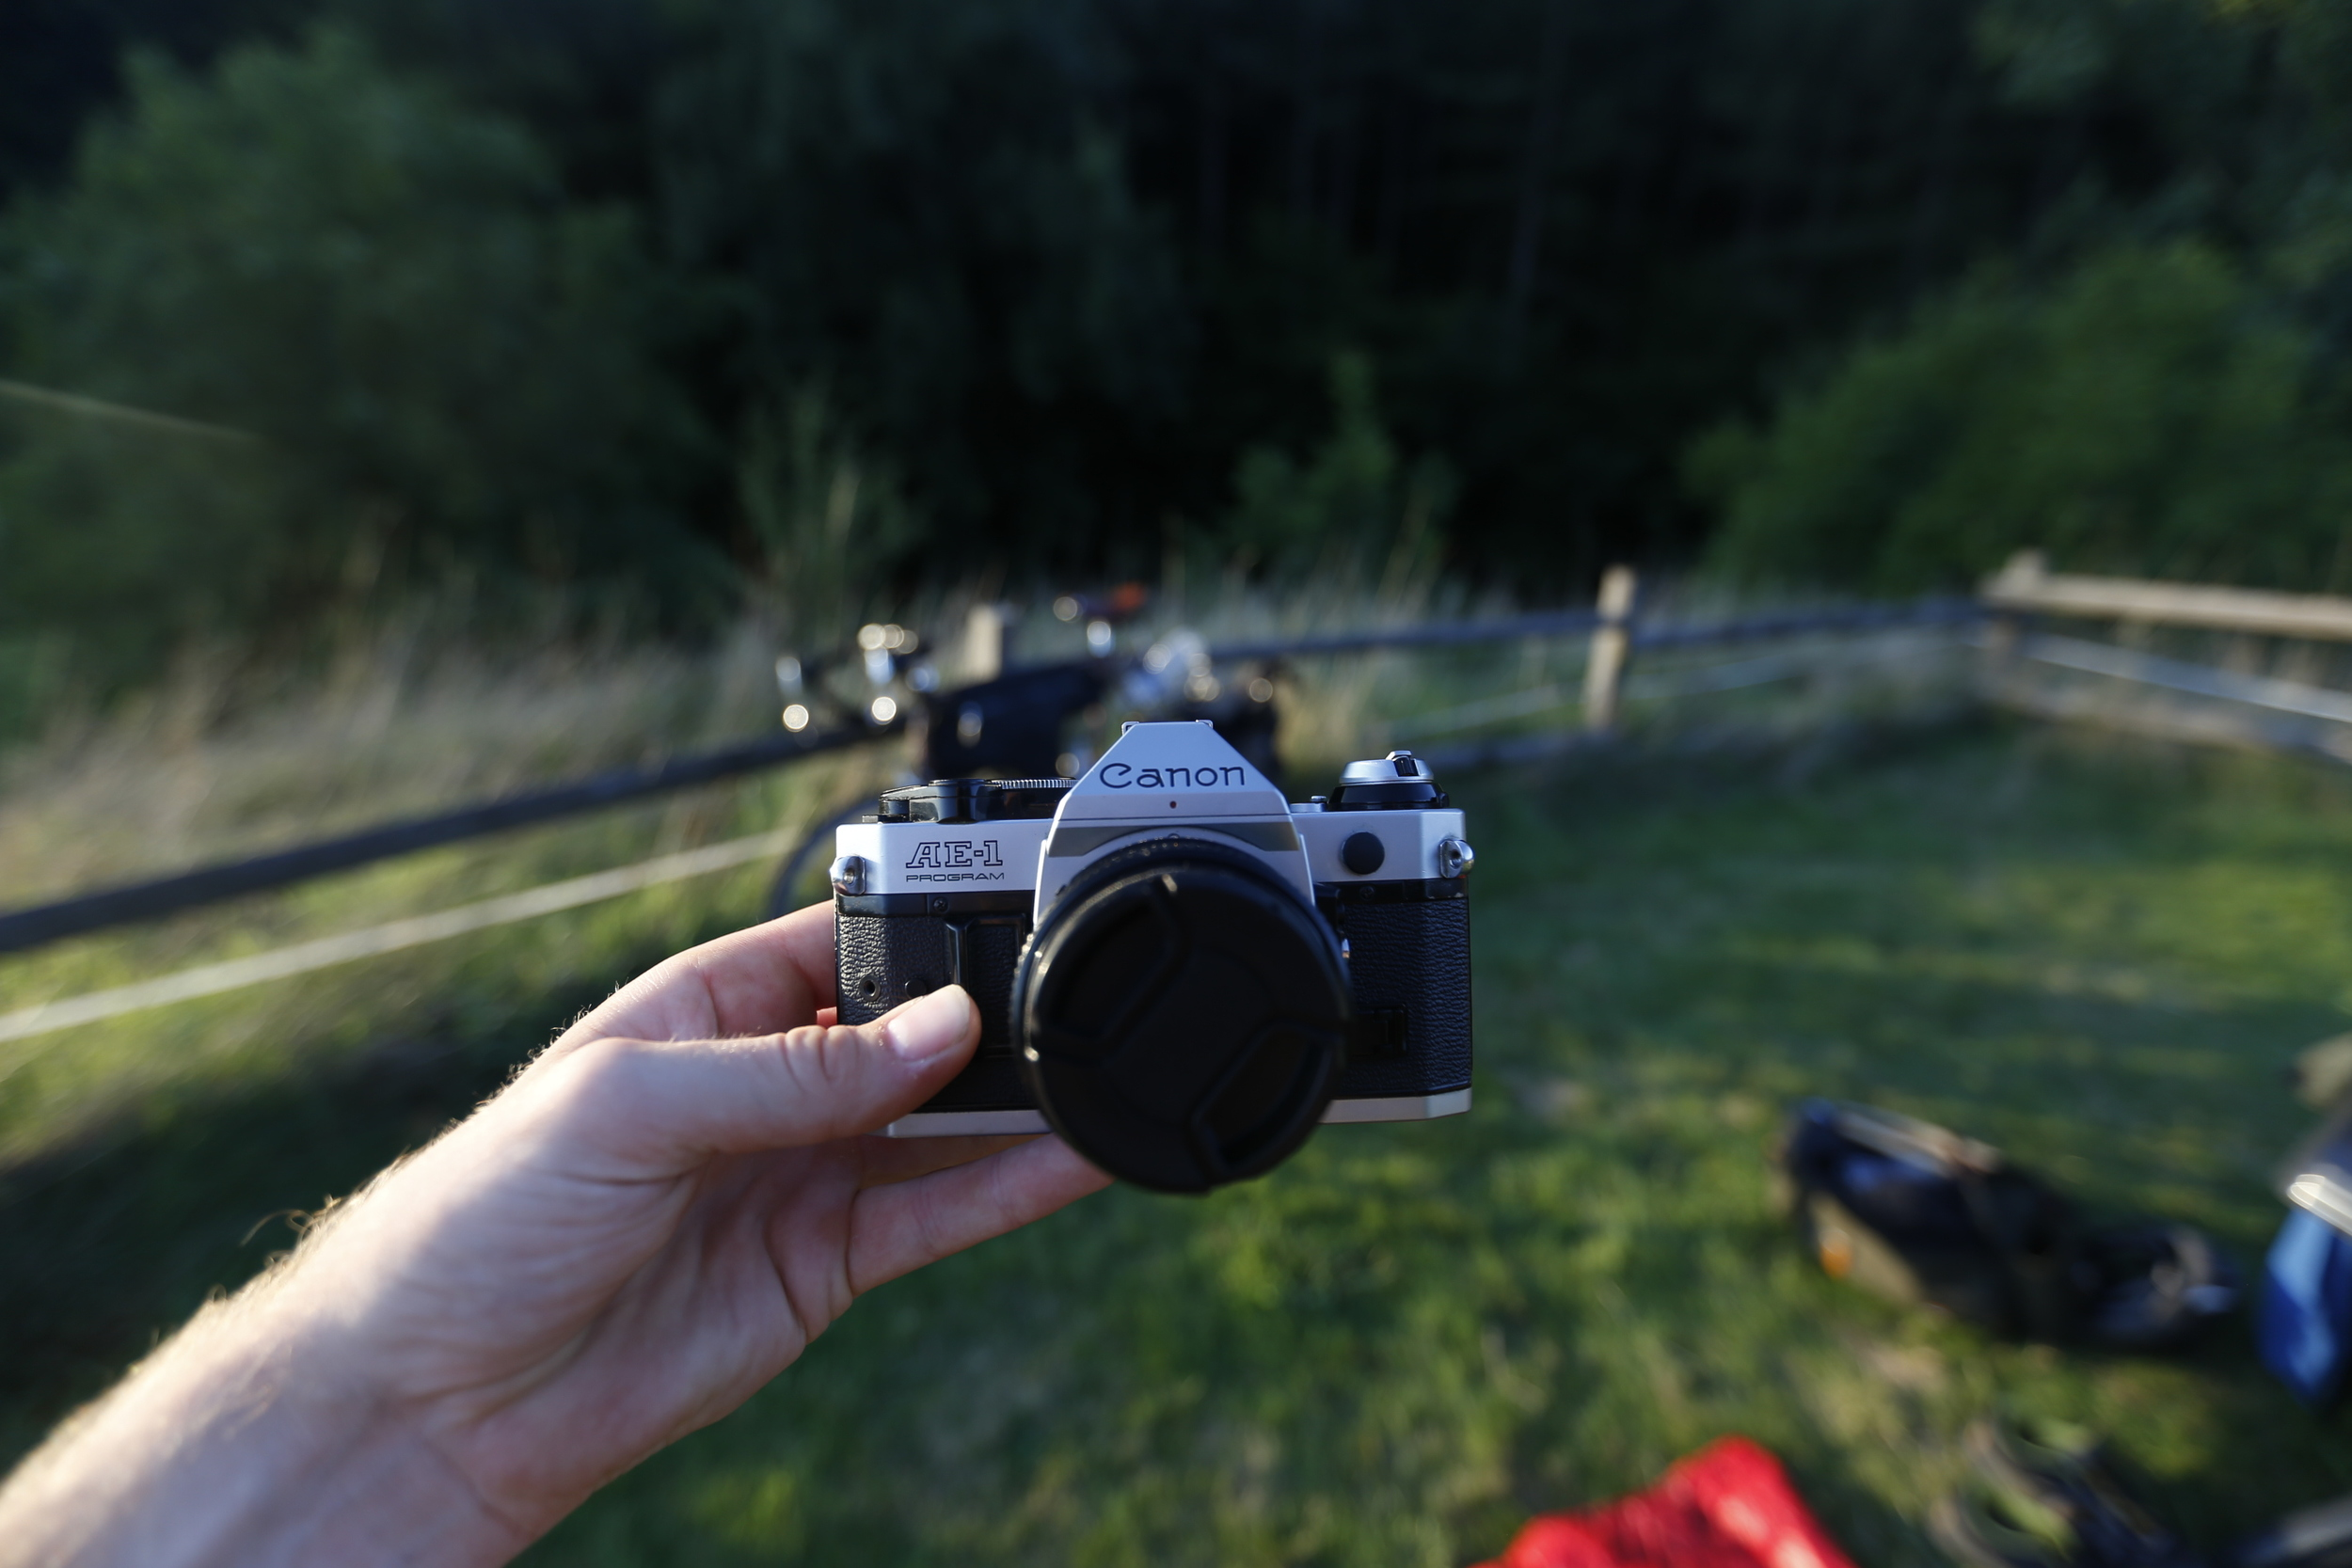 Canon AE-1, film, shoot film, film has grain, film is not dead, canon, canon photography, ae-1, photography blog, bikepacking blog, cycle touring, cycling blog, bikepacking gear, leica, camera, film camera, 35mm, bicycle touring apocalypse